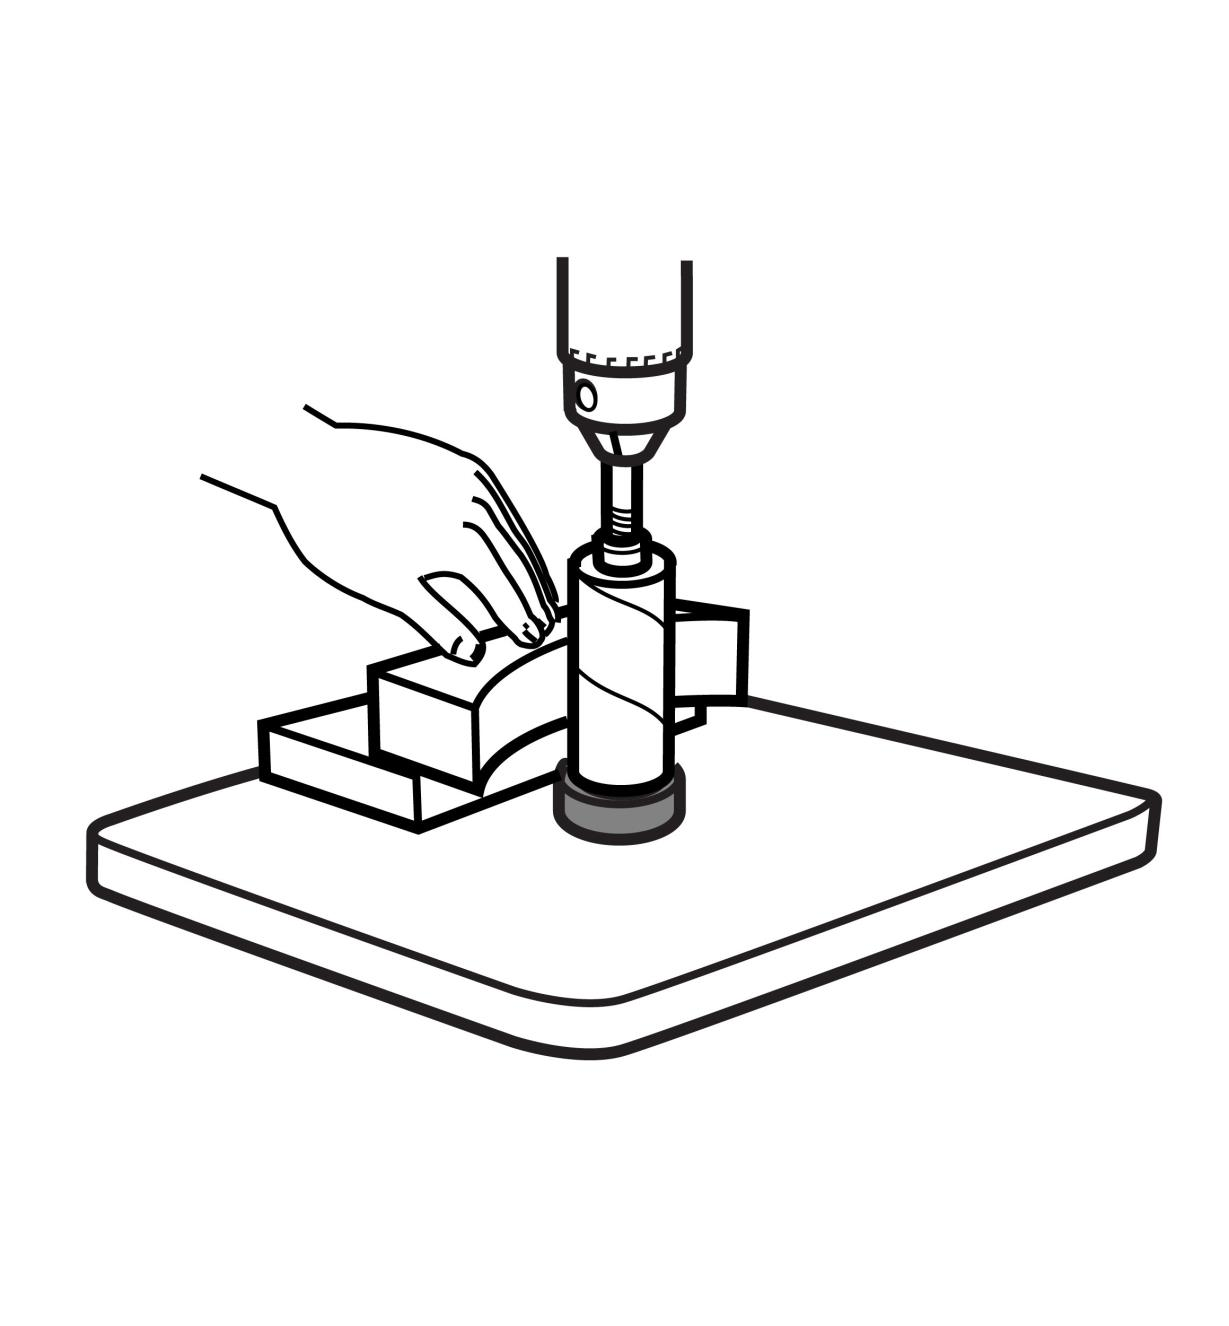 Illustration of sanding with the Drum-Sander Support System